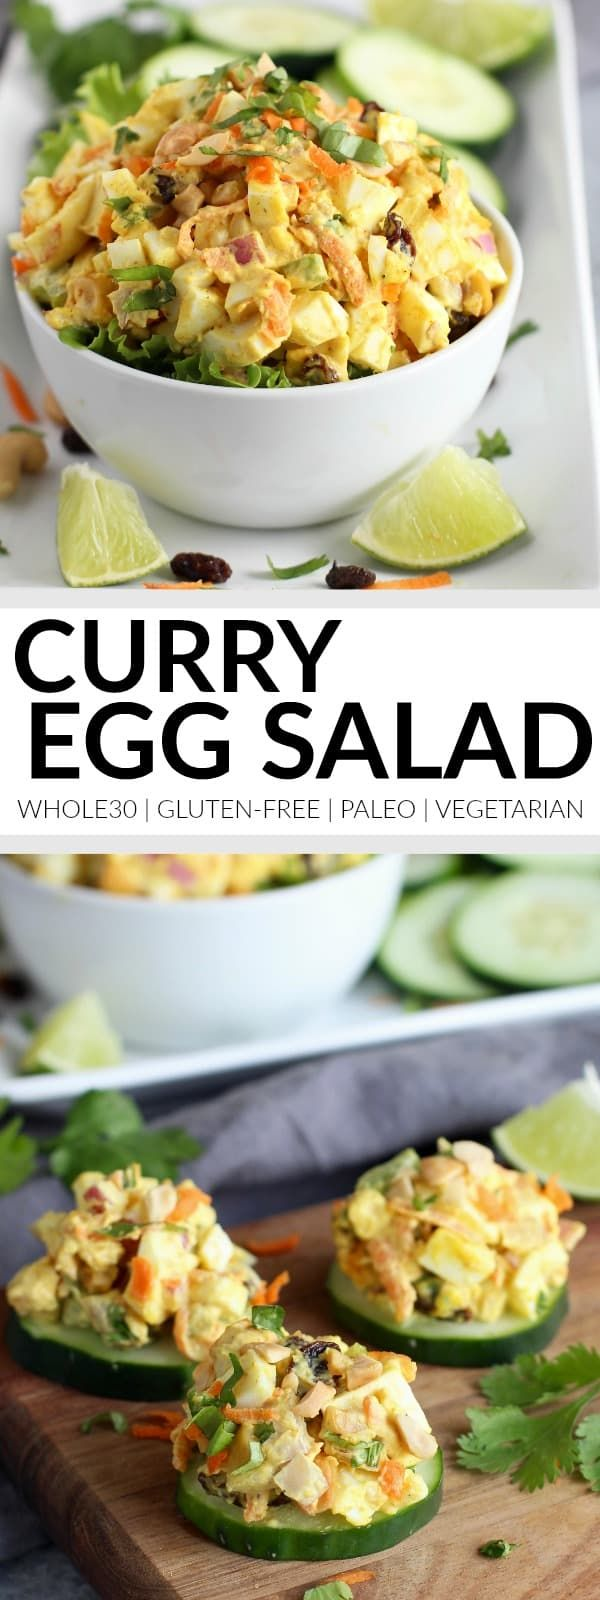 Add a little life to your lunch with this Curry Egg Salad! Serve it on a bed of greens, on top of cucumber slices or tucked tightly in a crisp lettuce leaf for a satisfying and delicious Whole30-friendly lunch.